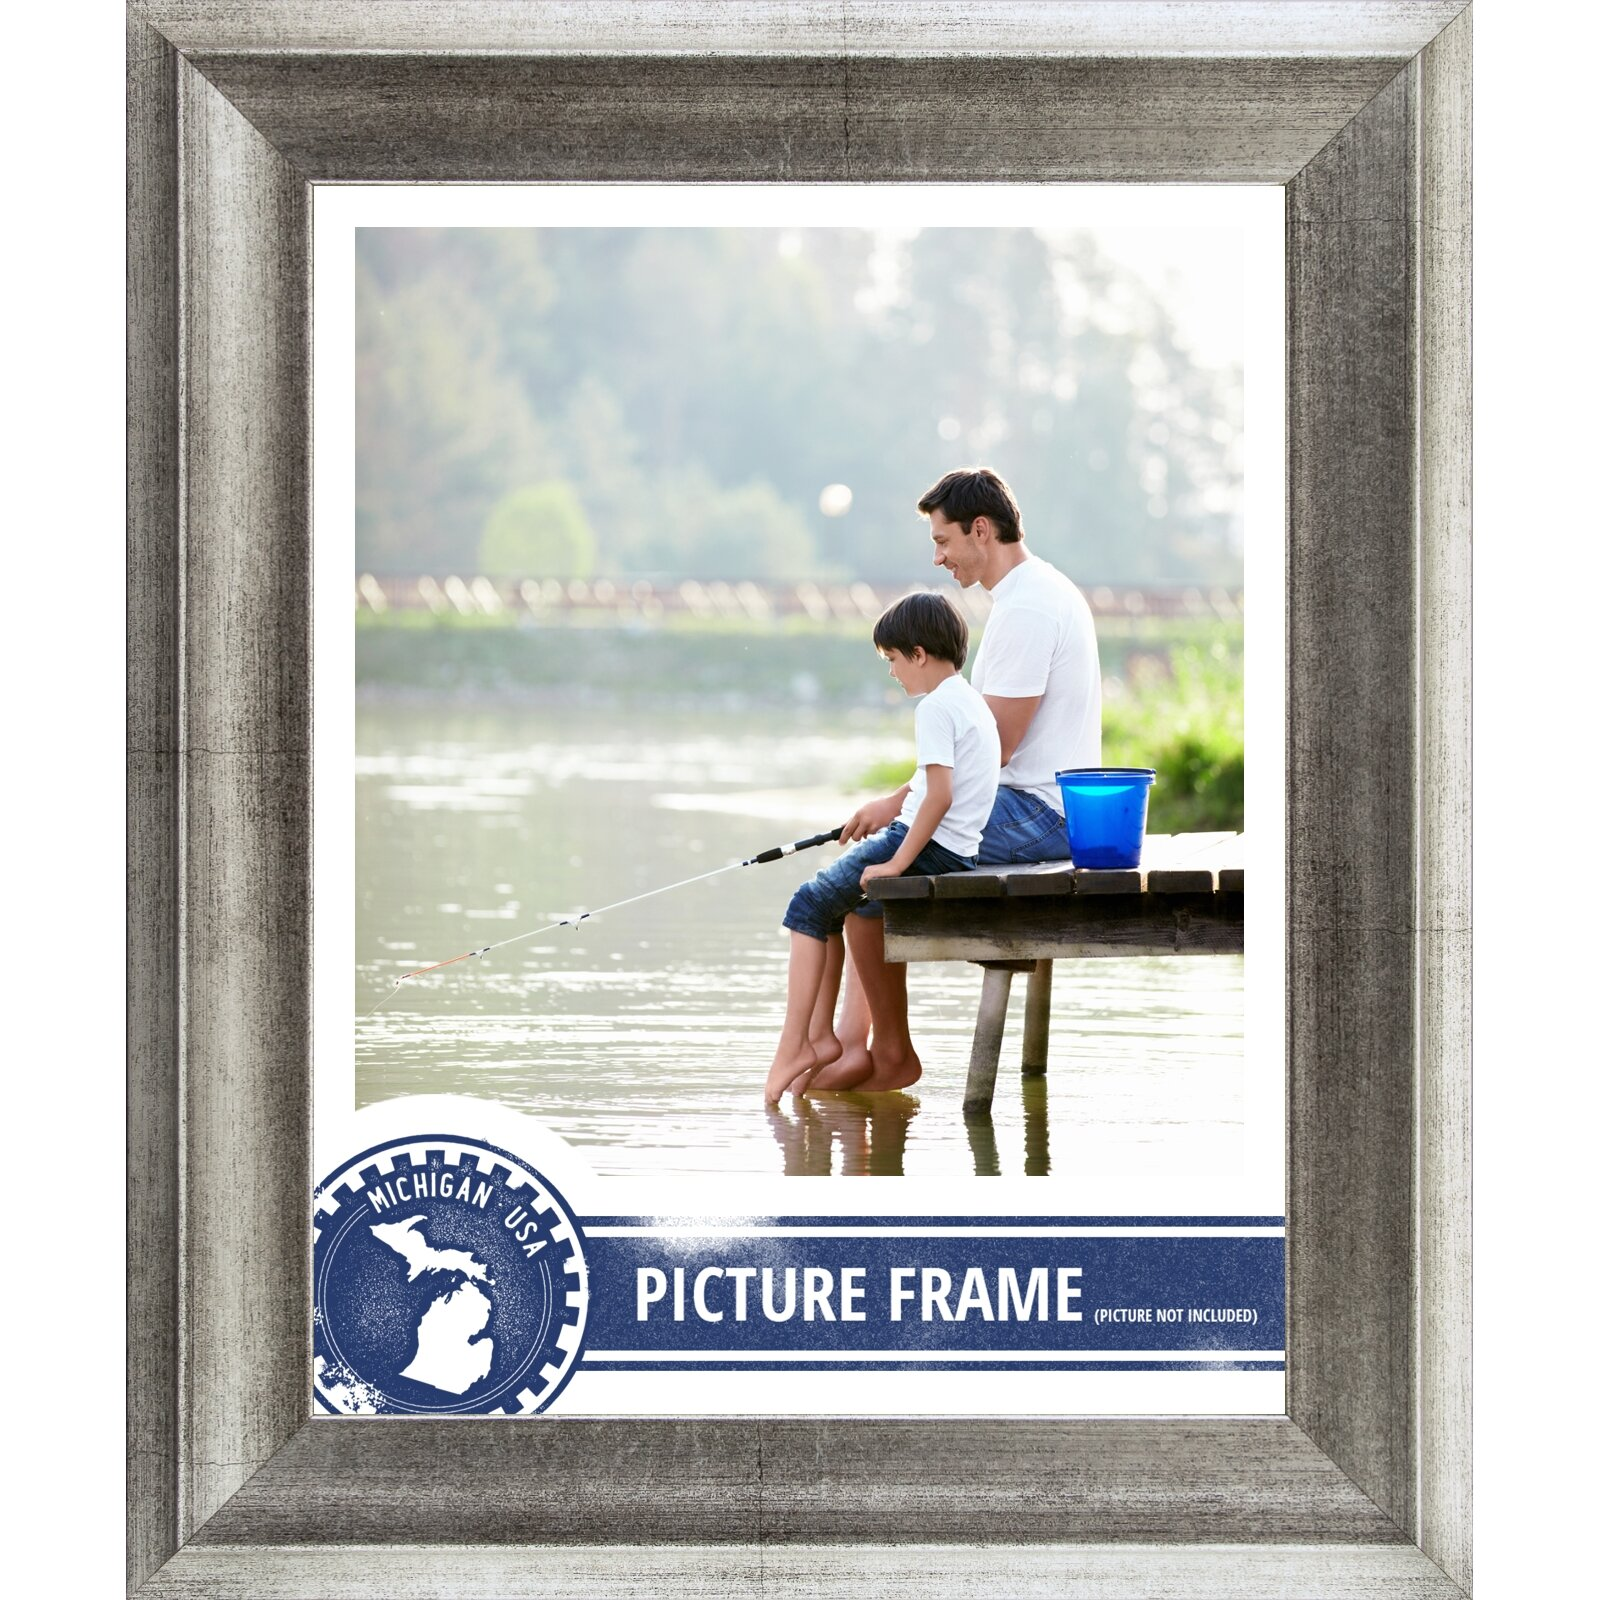 craig frames inc 15 wide distressed picture frame poster frame